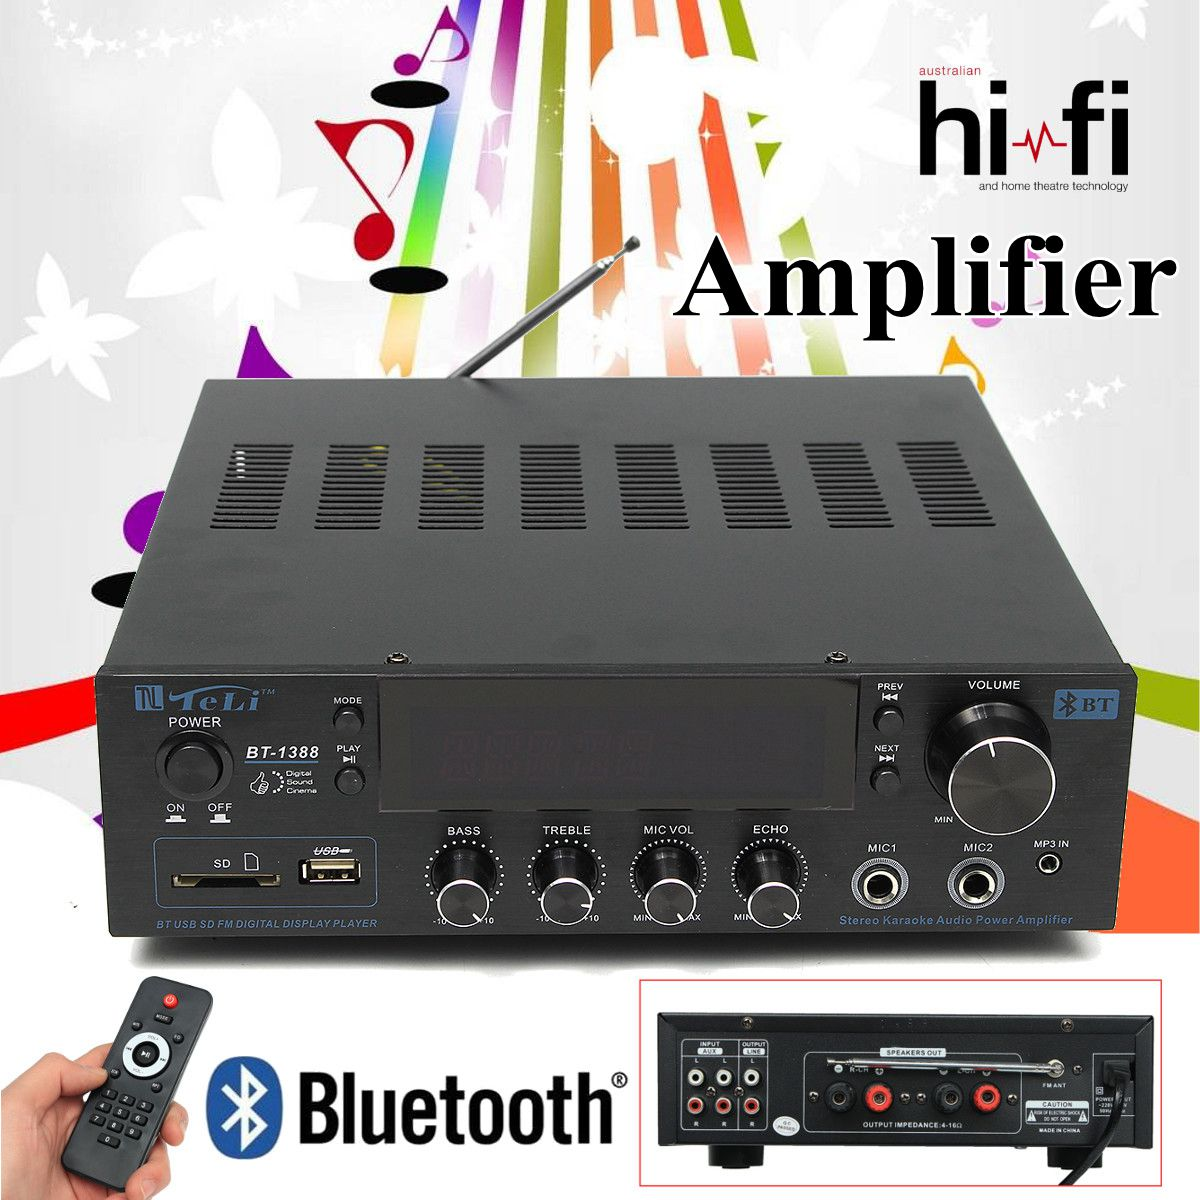 2CH Bluetooth HIFI 2 0 Super Bass Output Power Stereo Amplifier with Remote Controller Amplifier card Bluetooth dual microphone hot sale wireless bluetooth digital 2 1 channel amplifier board 50w 50w stereo output 100w bass output for rc parts